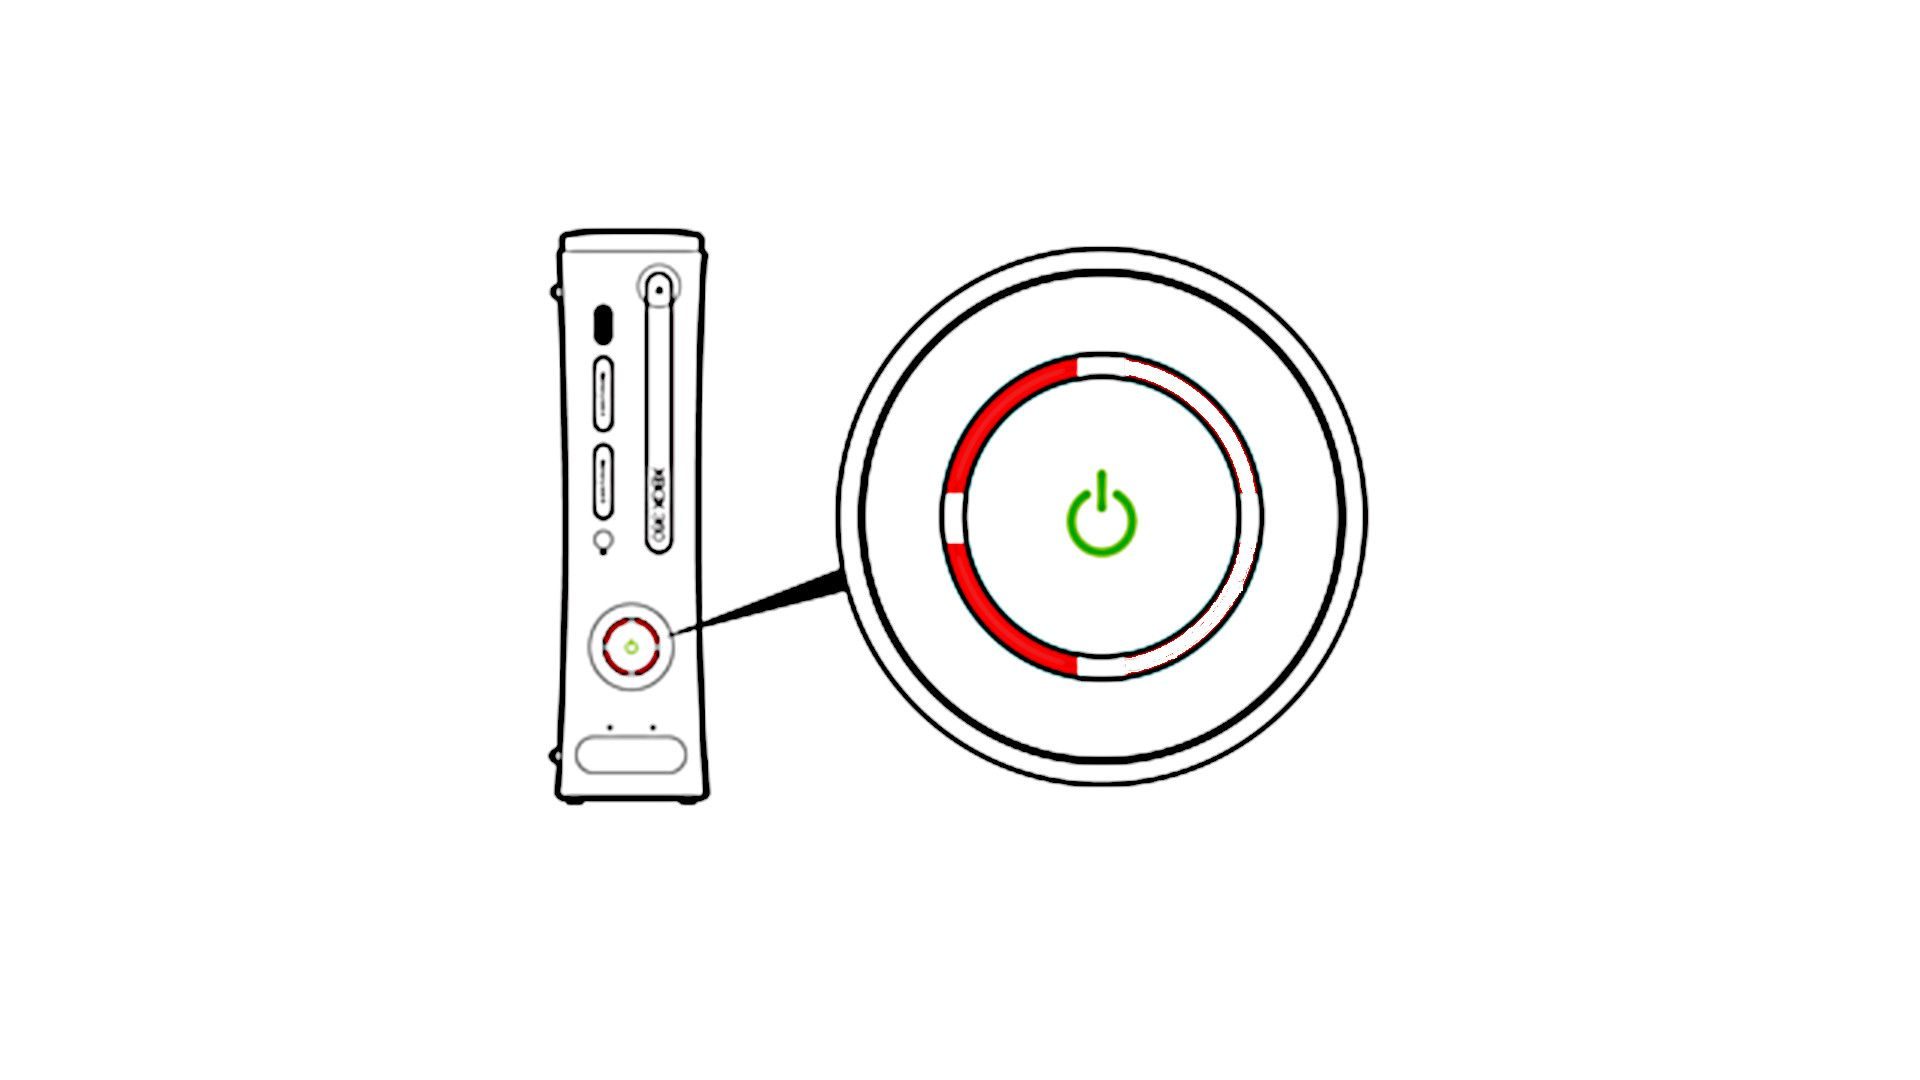 Xbox 360 with two red LEDs illuminated